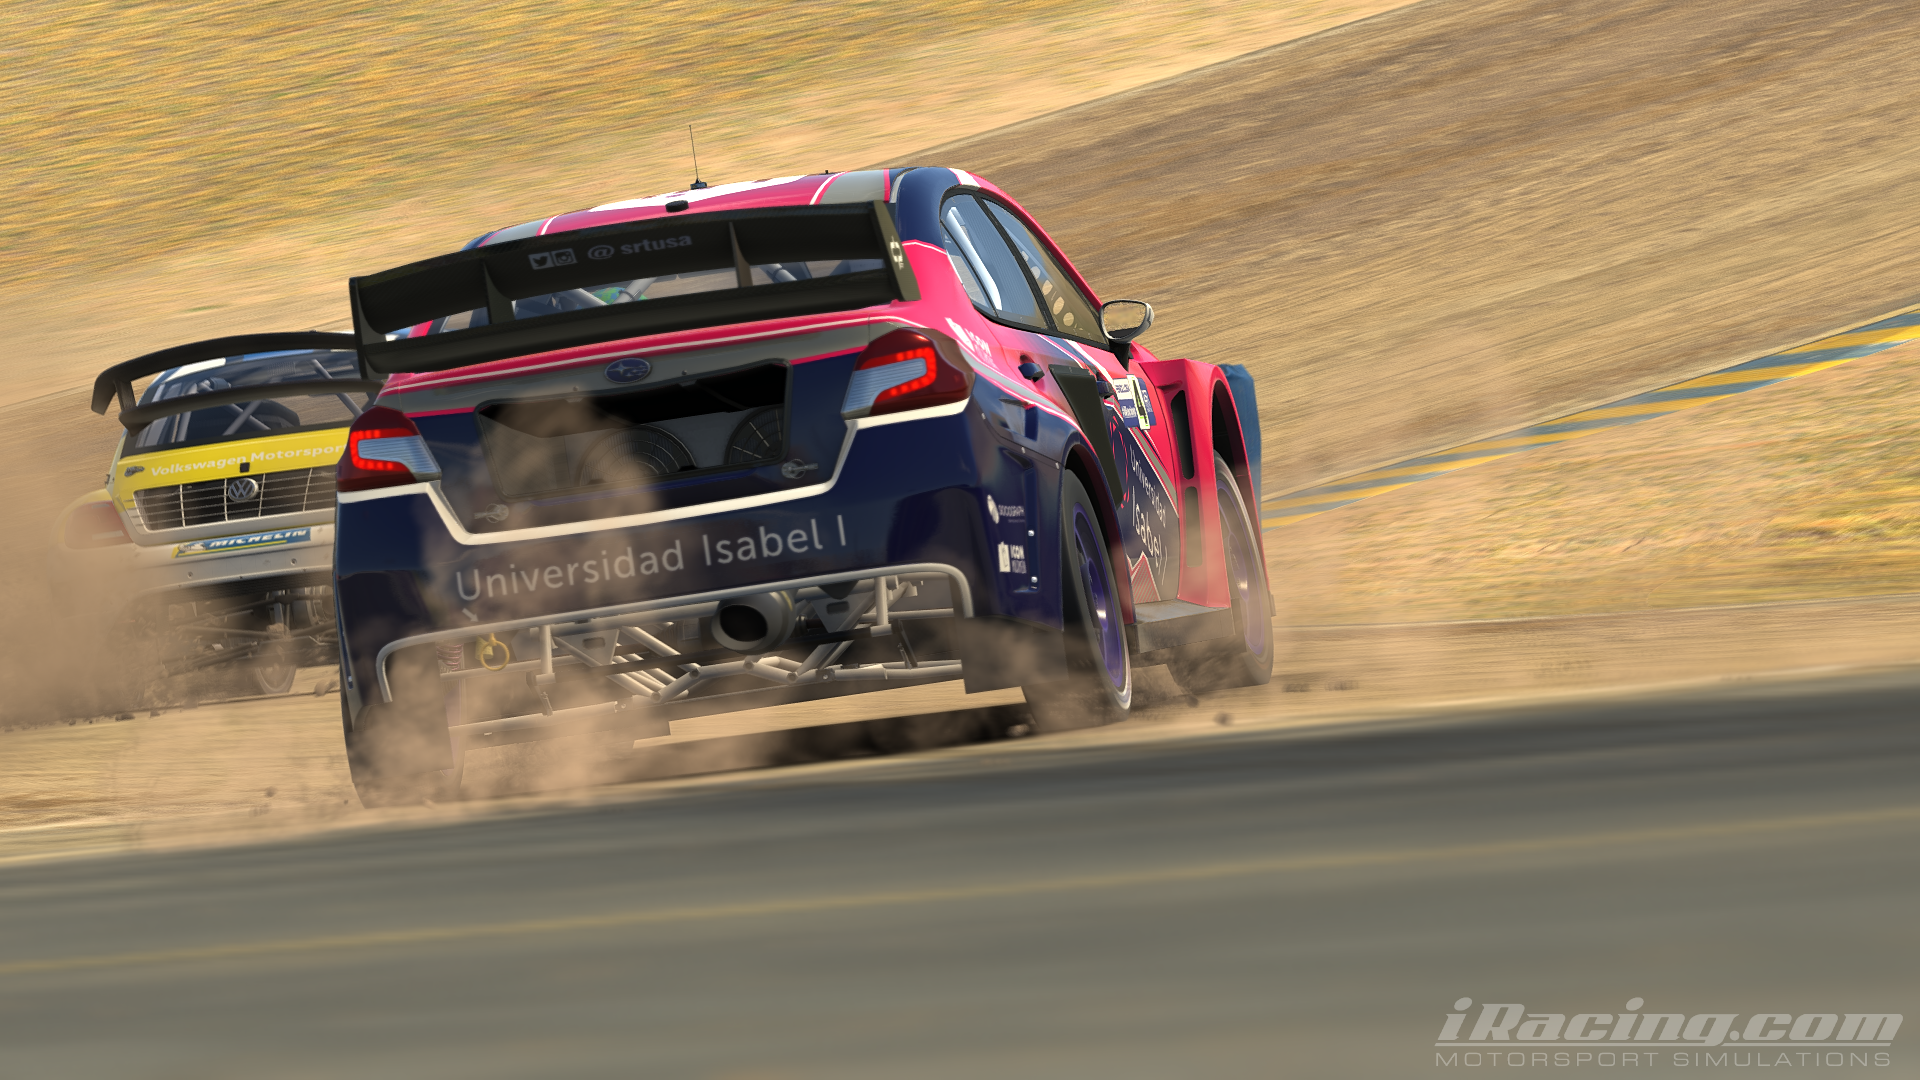 Our team will be in the in the iRacing Rallycross World Championship